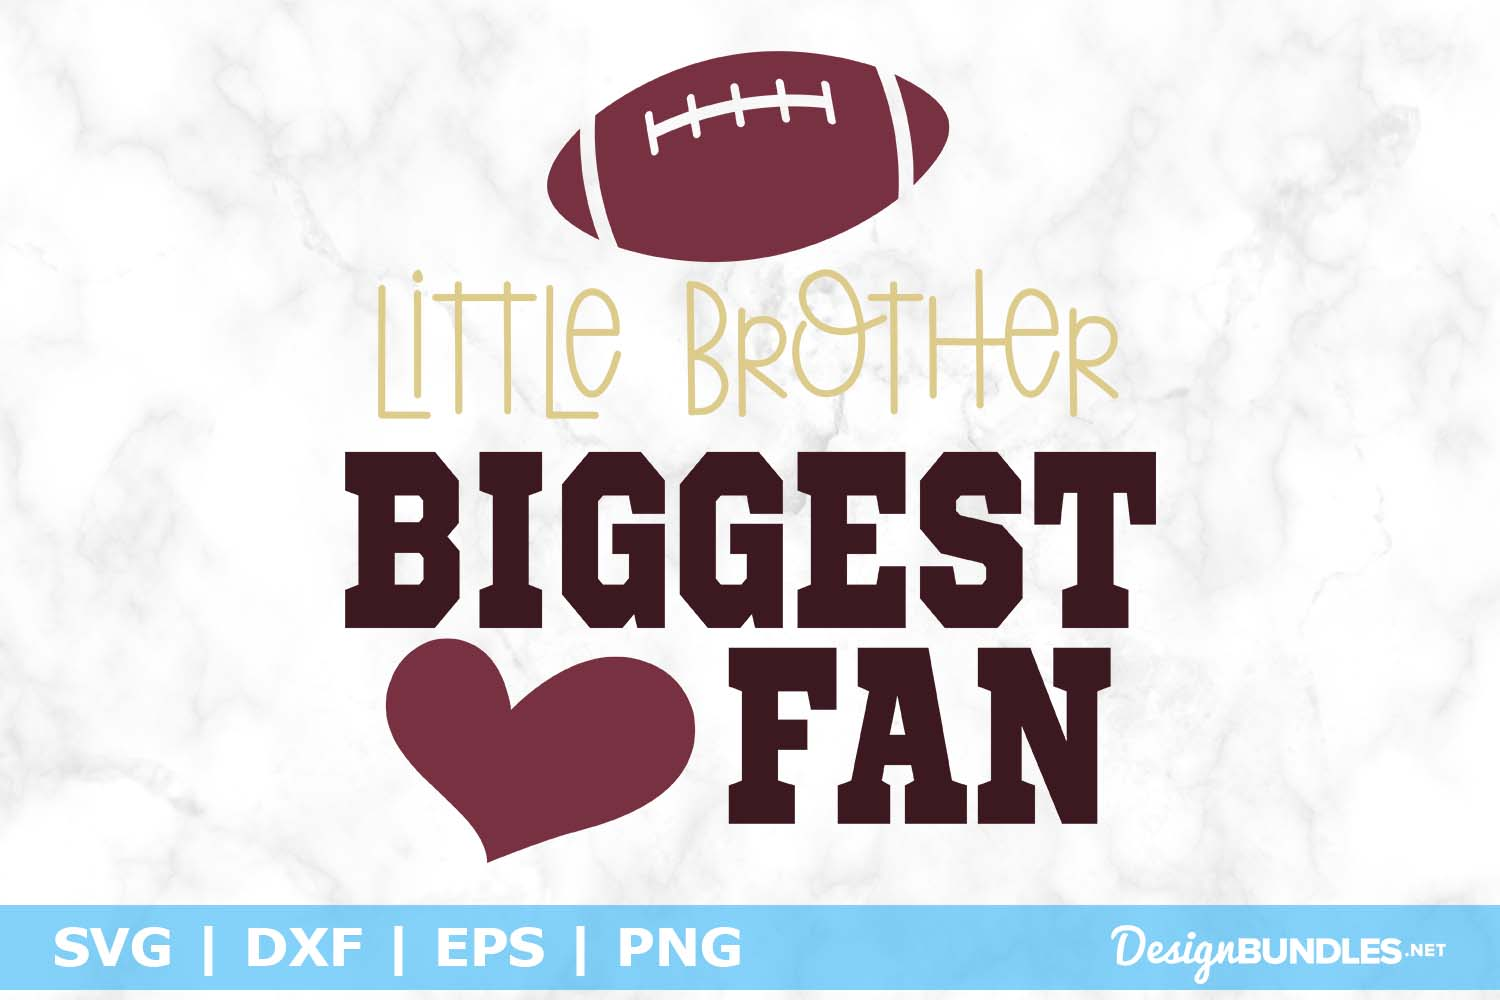 Little Brother Biggest Fan SVG File example image 1